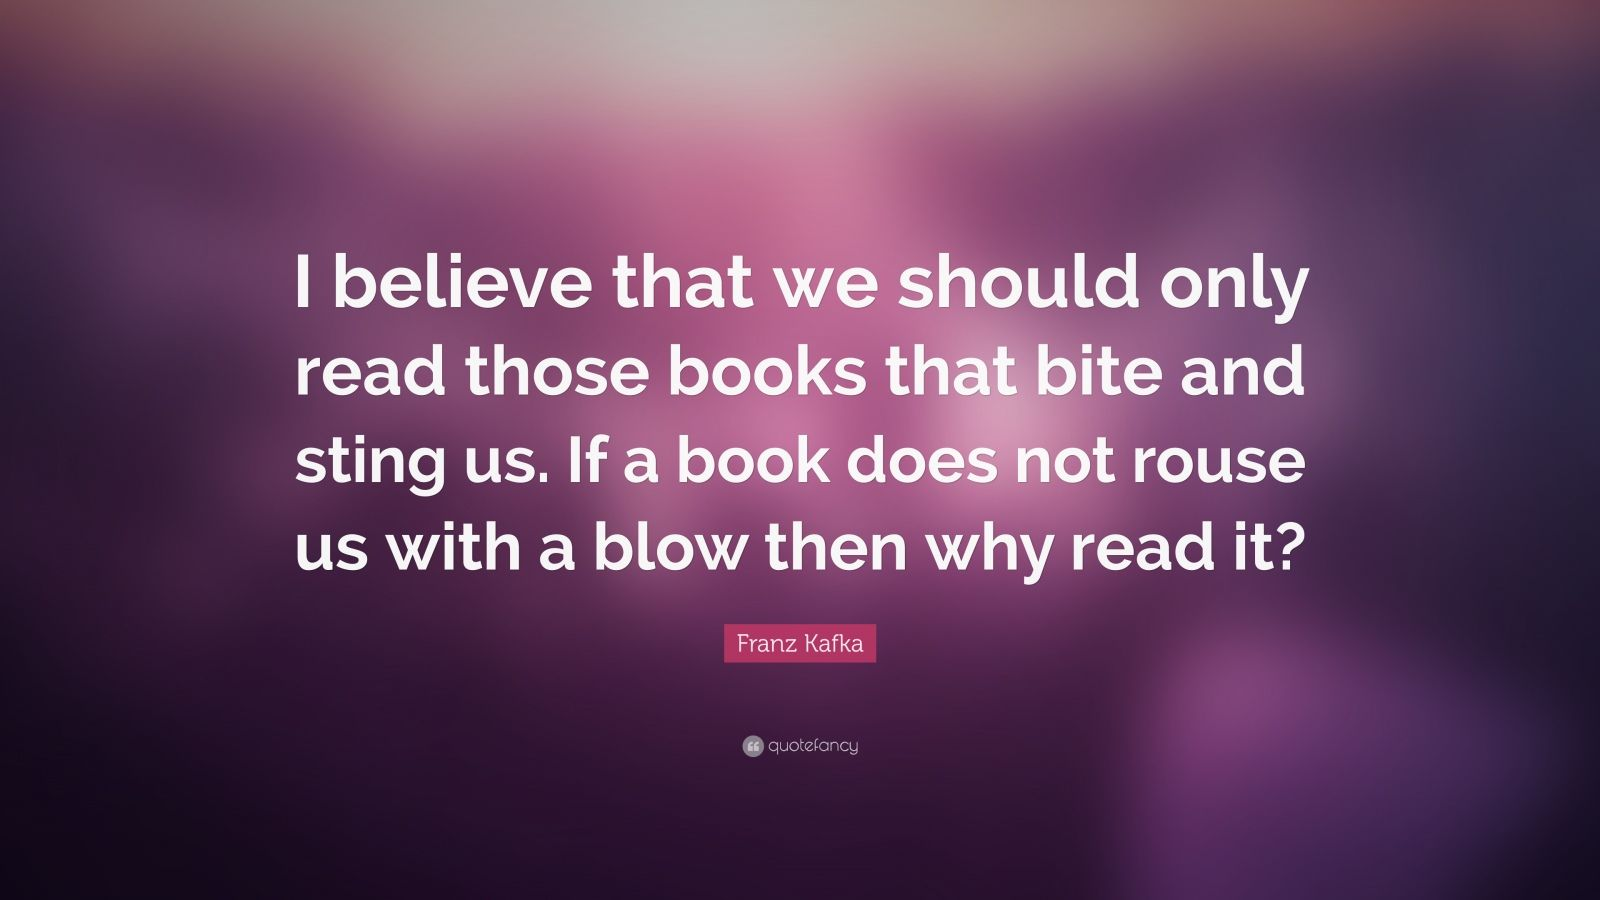 """Franz Kafka Quote: """"I believe that we should only read those books that bite and sting us. If a book does not rouse us with a blow then why read it?"""""""